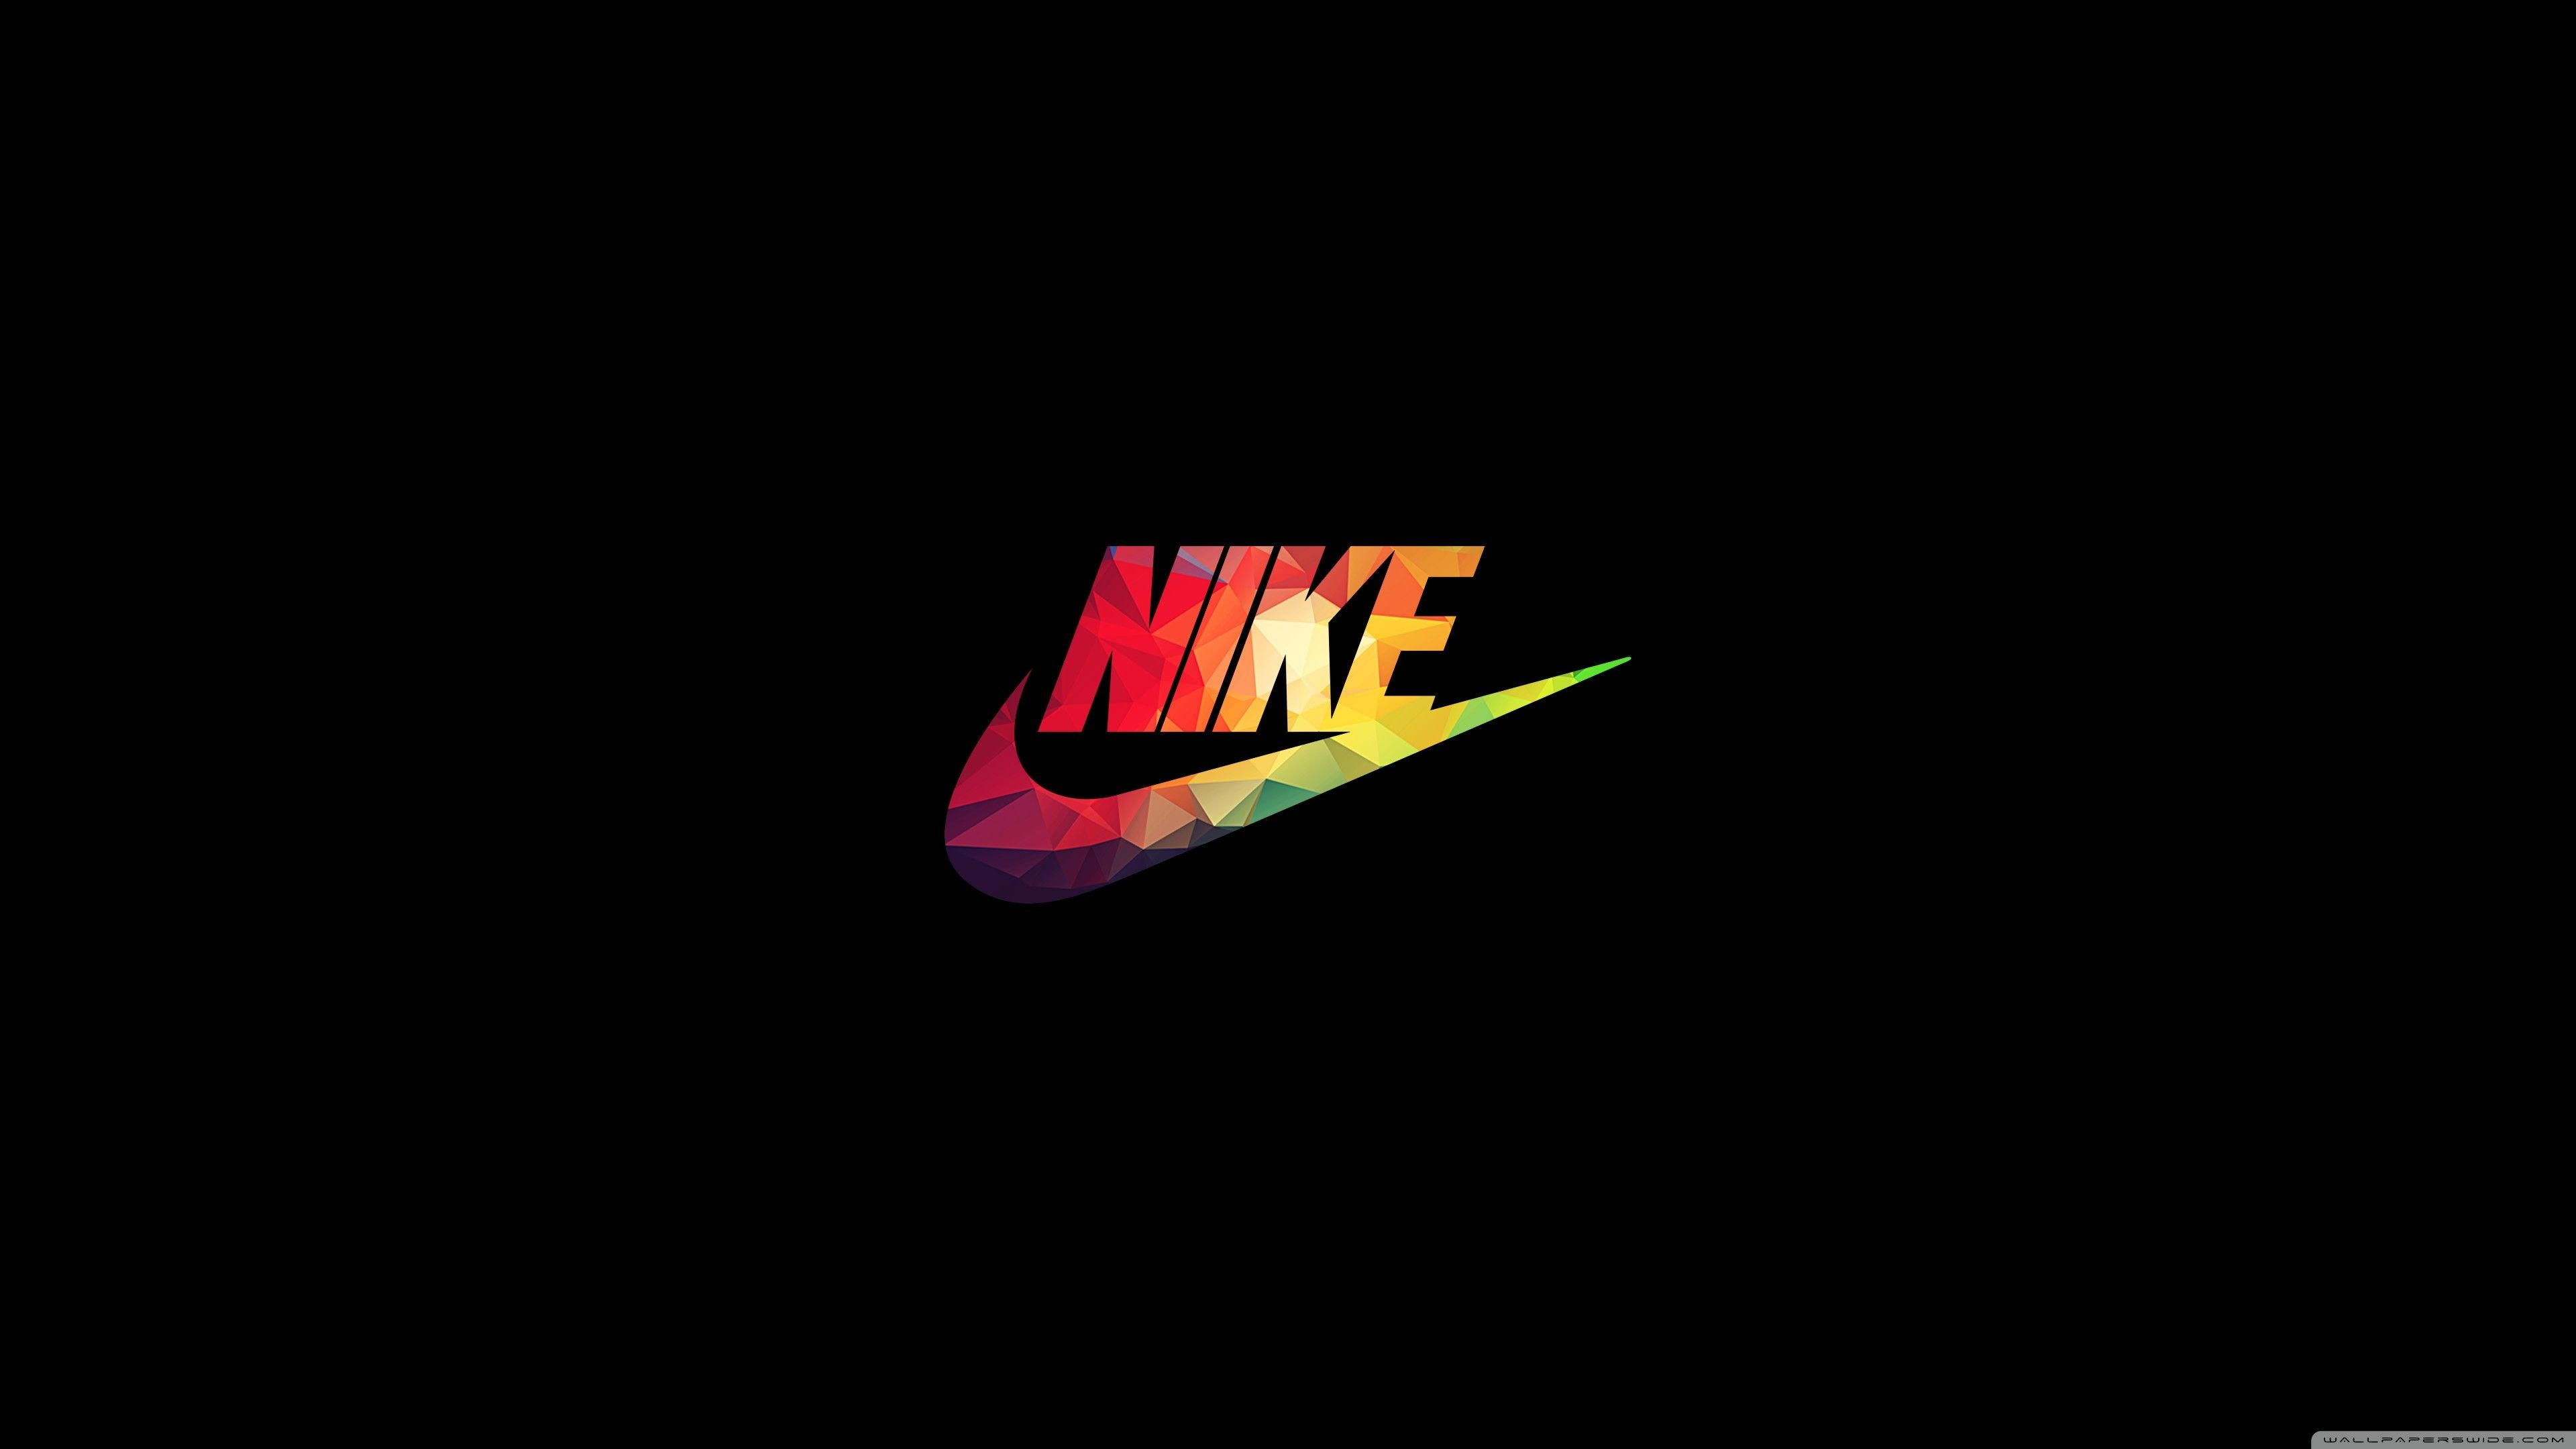 Manuscrito Comunista Trampas  Nike 4K Wallpapers - Top Free Nike 4K Backgrounds - WallpaperAccess